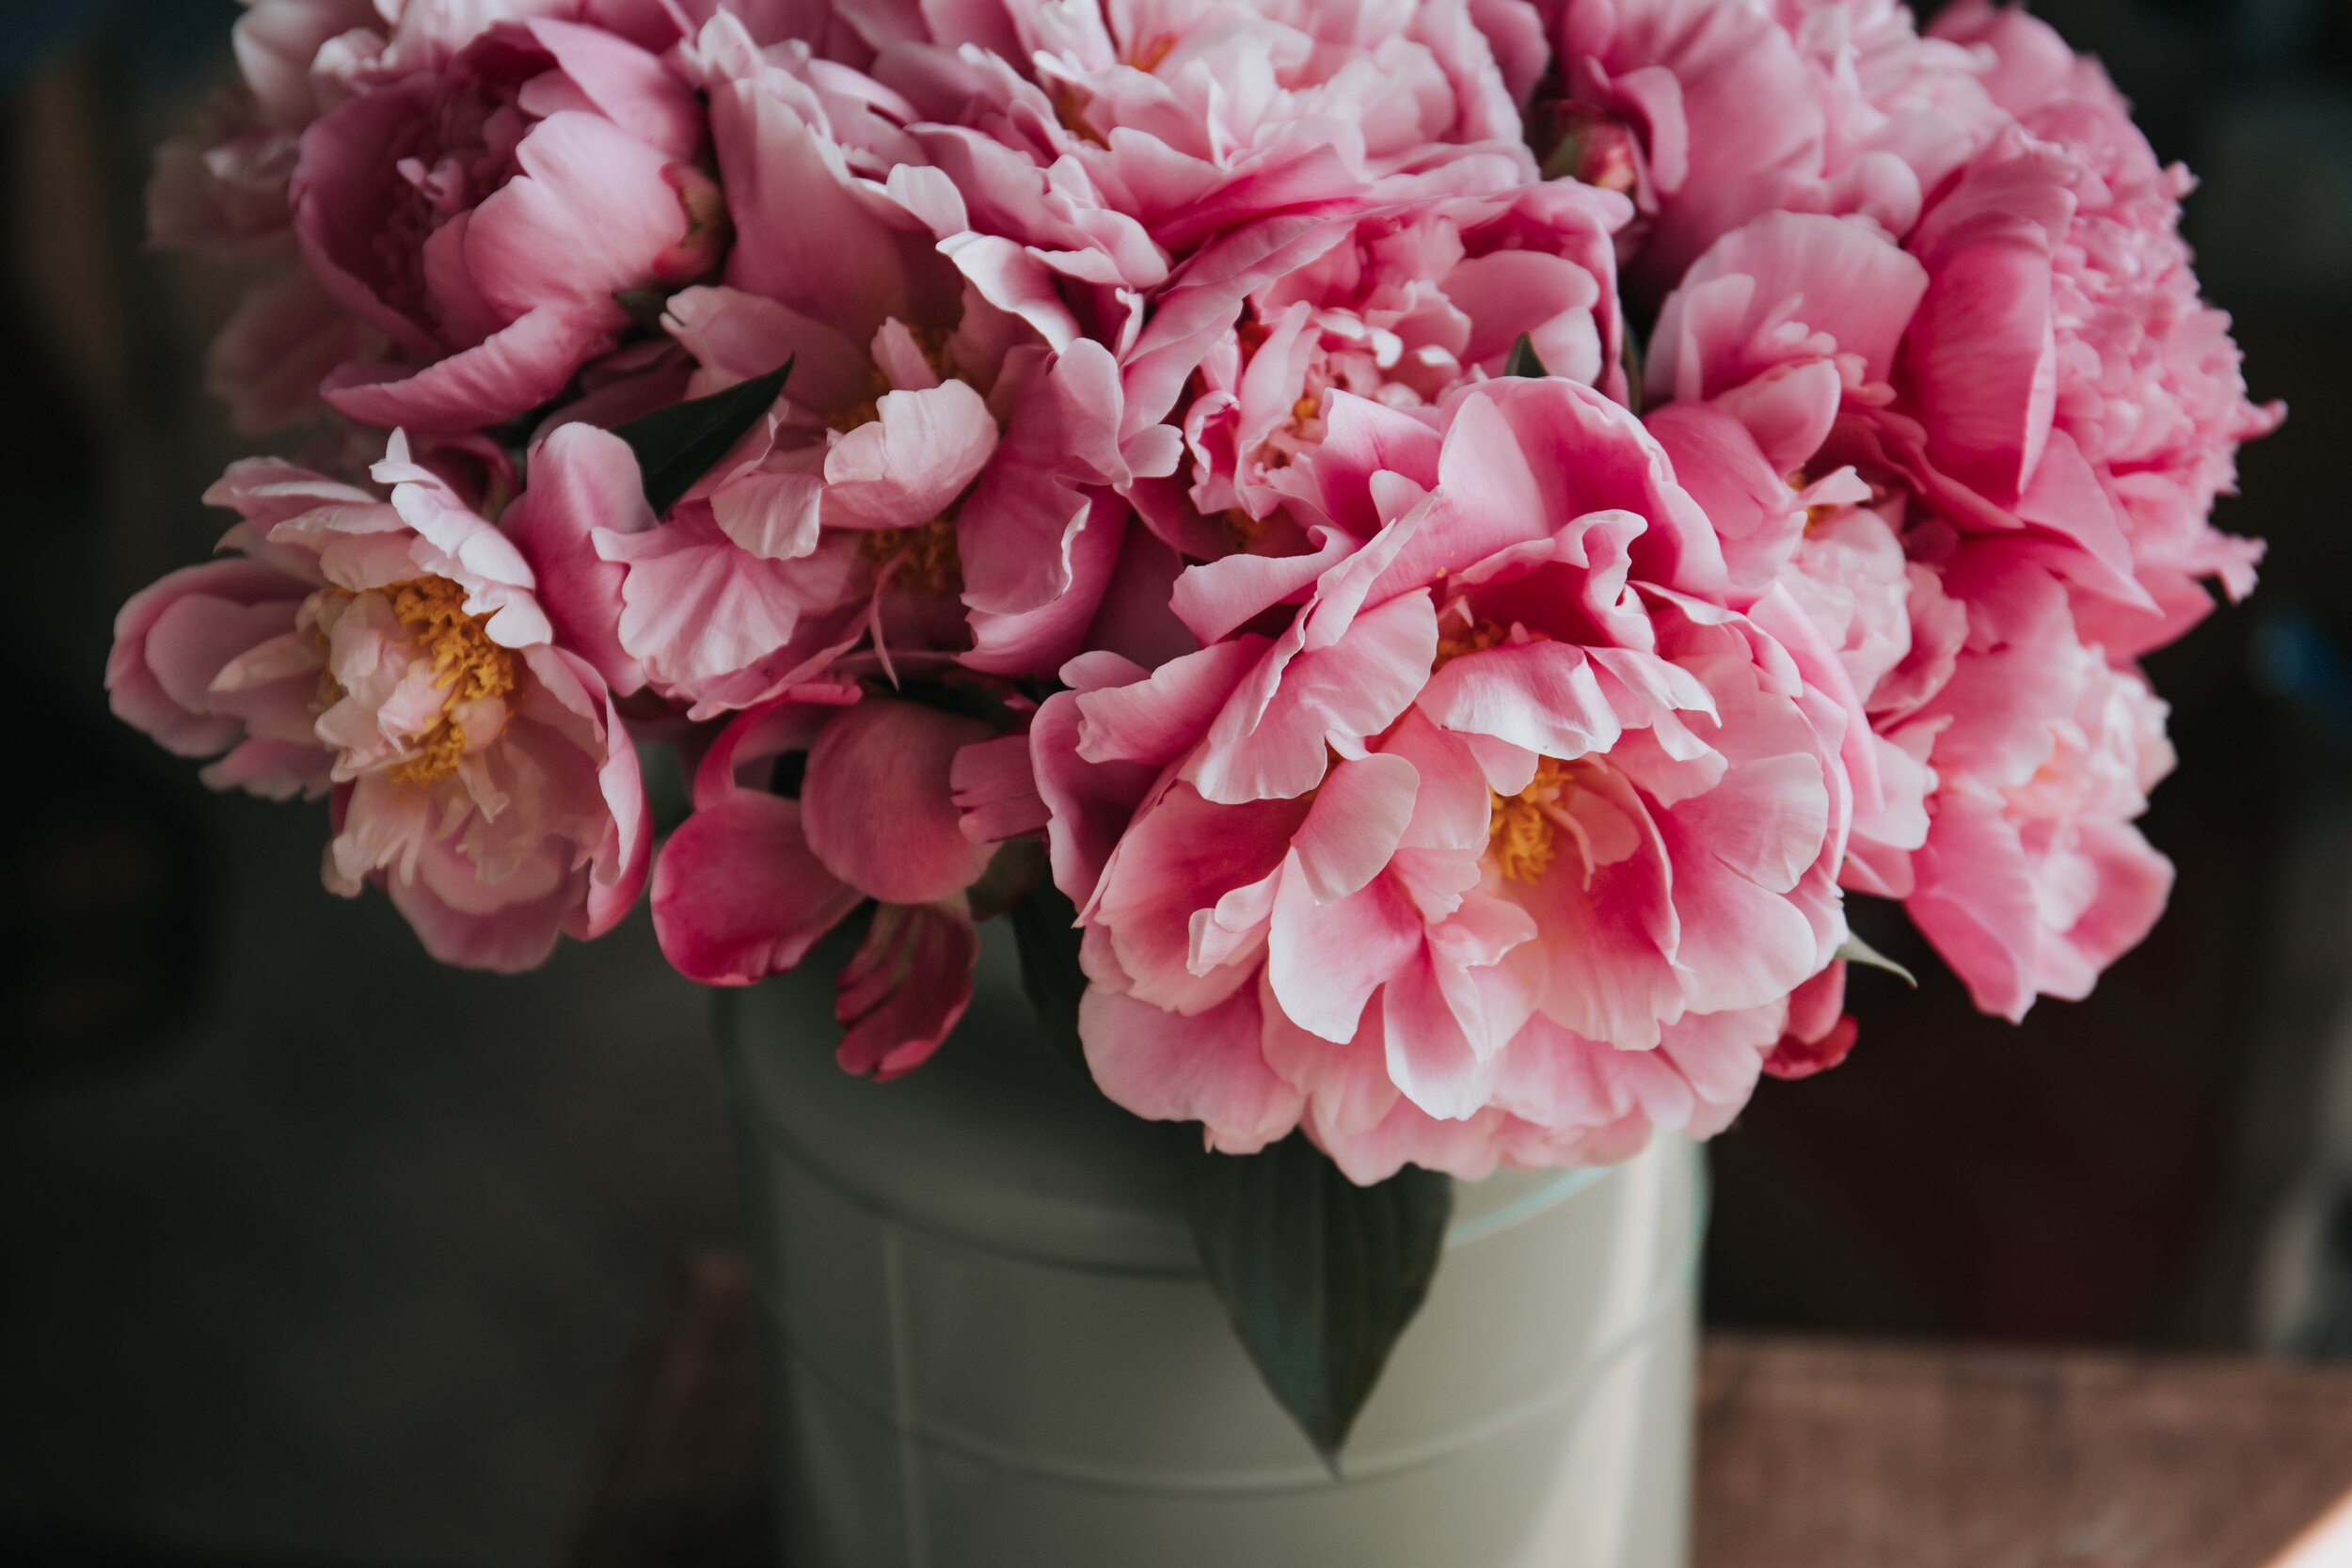 Shades of pink with dark greys and gold